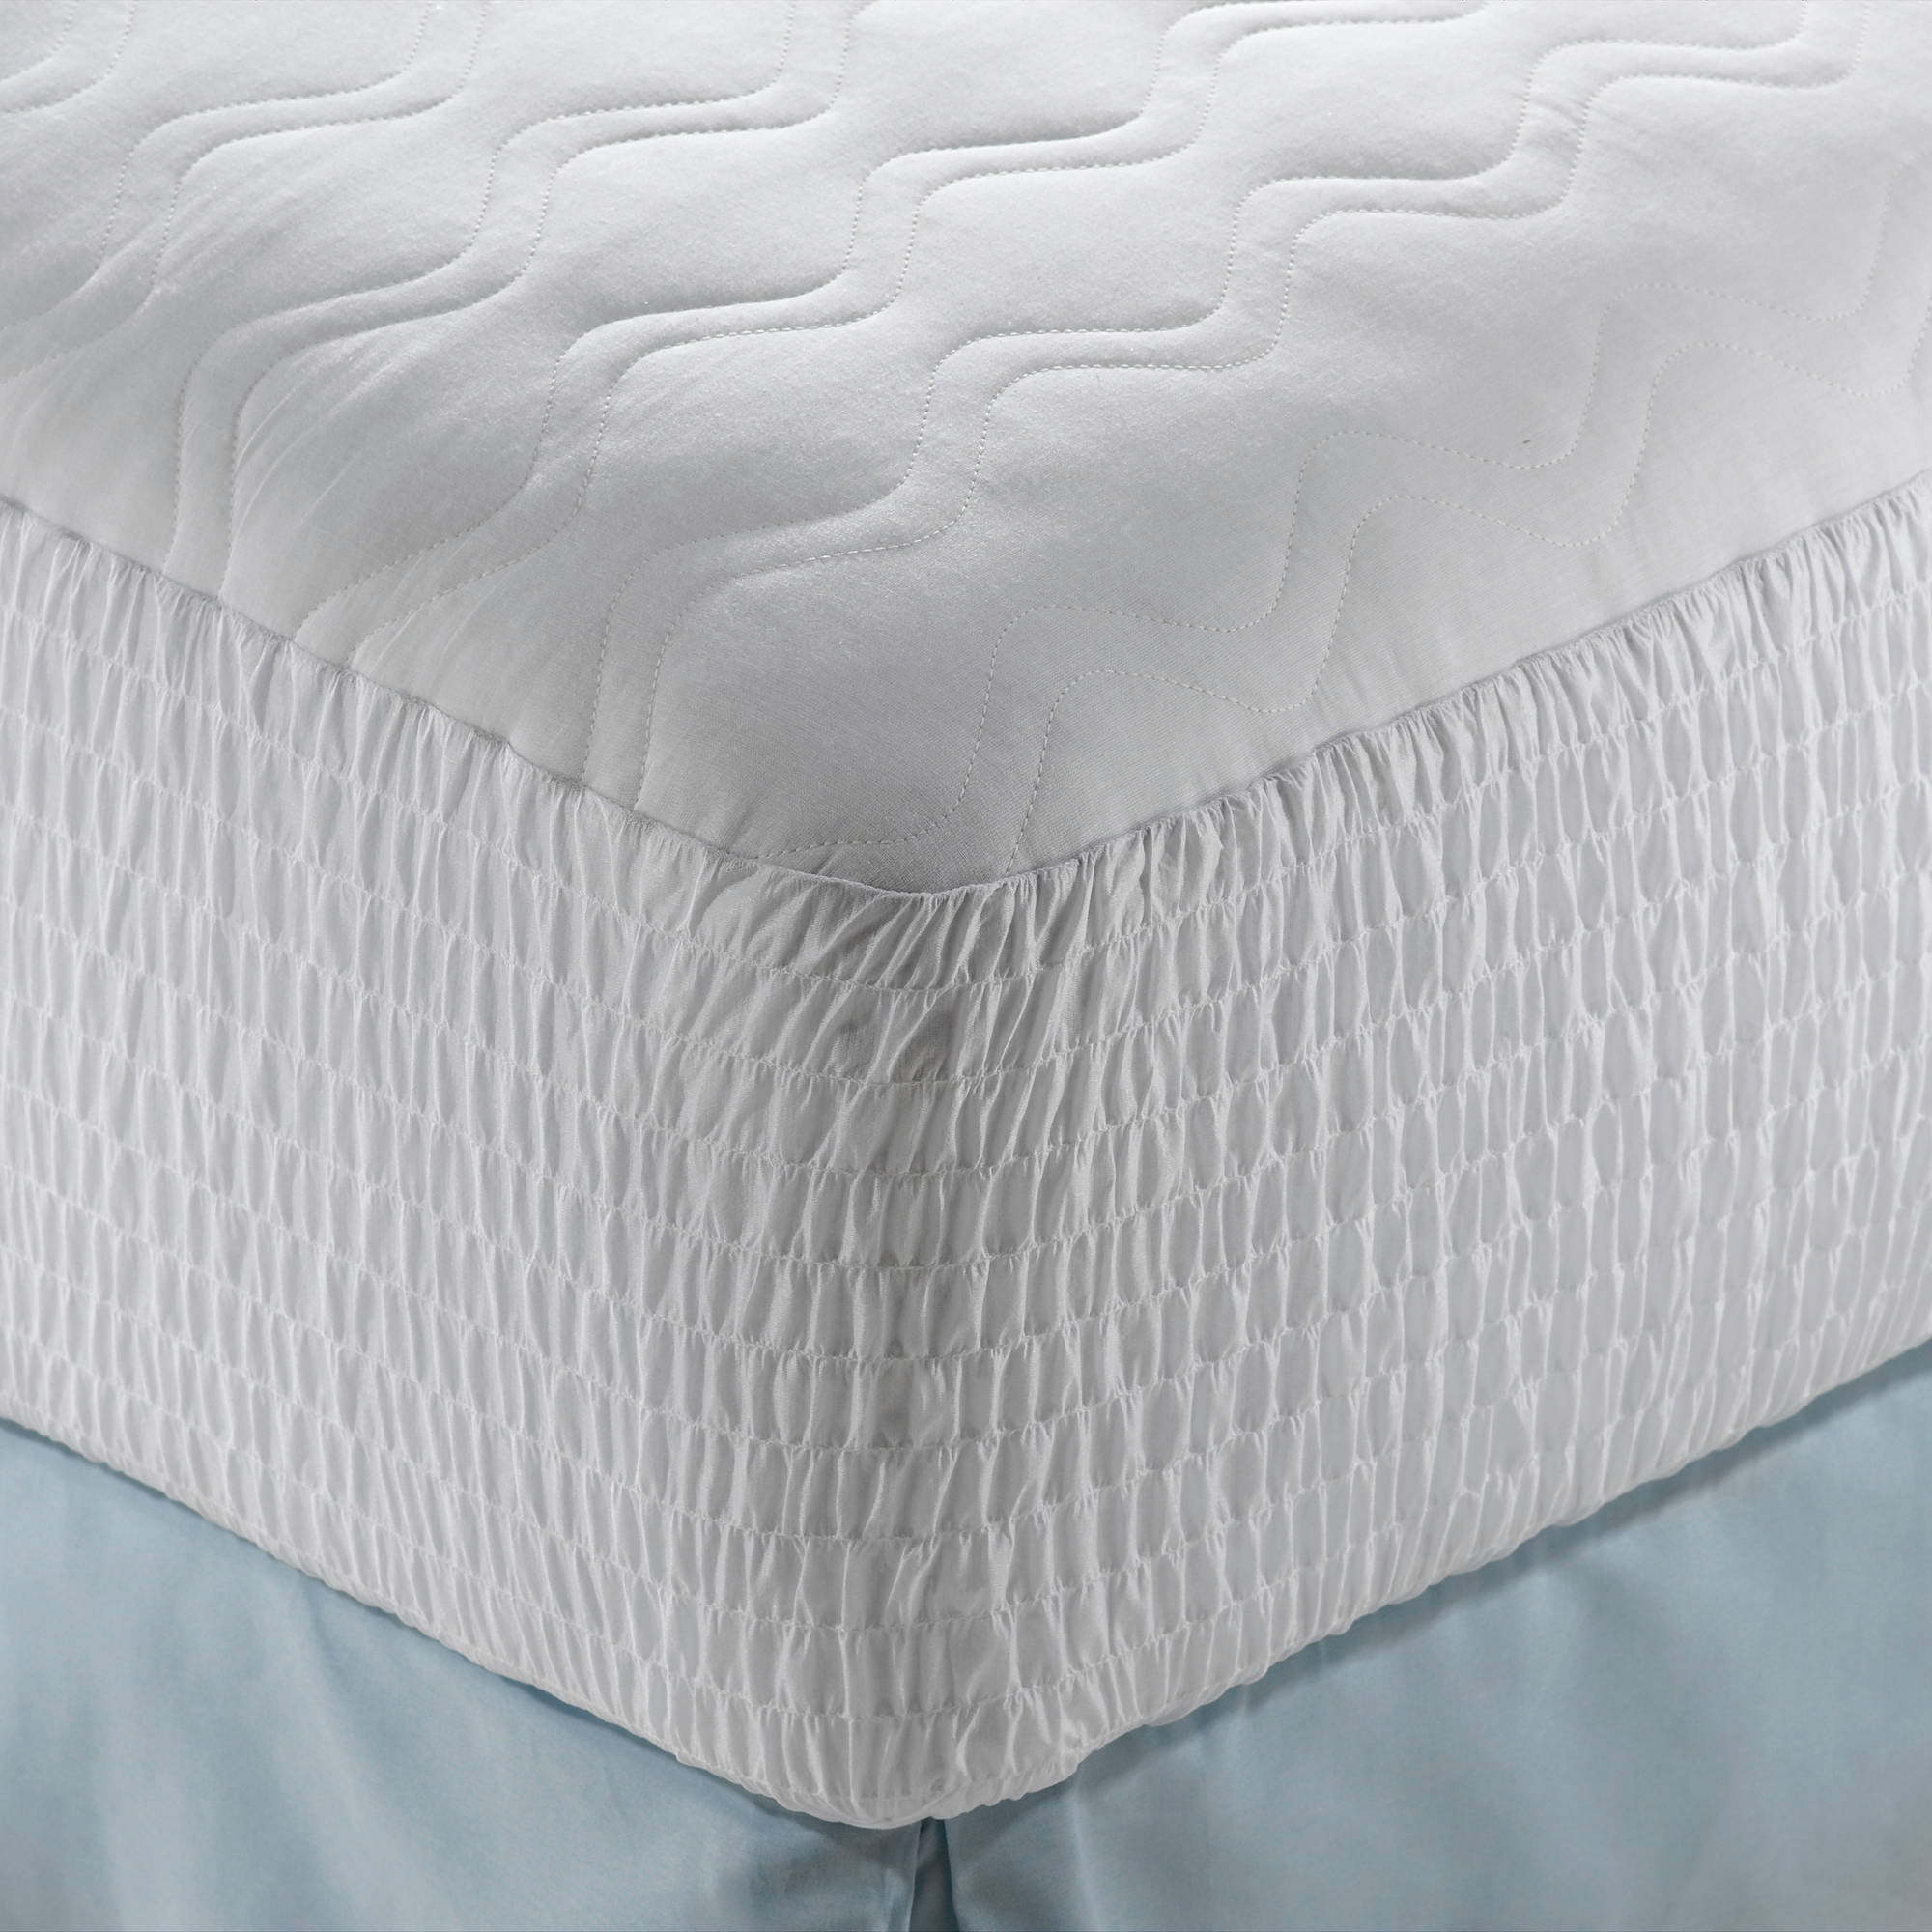 product inch pillow perfect super free mattress sleeper queen overstock wayburn home topper pillowtop today serta size top garden shipping